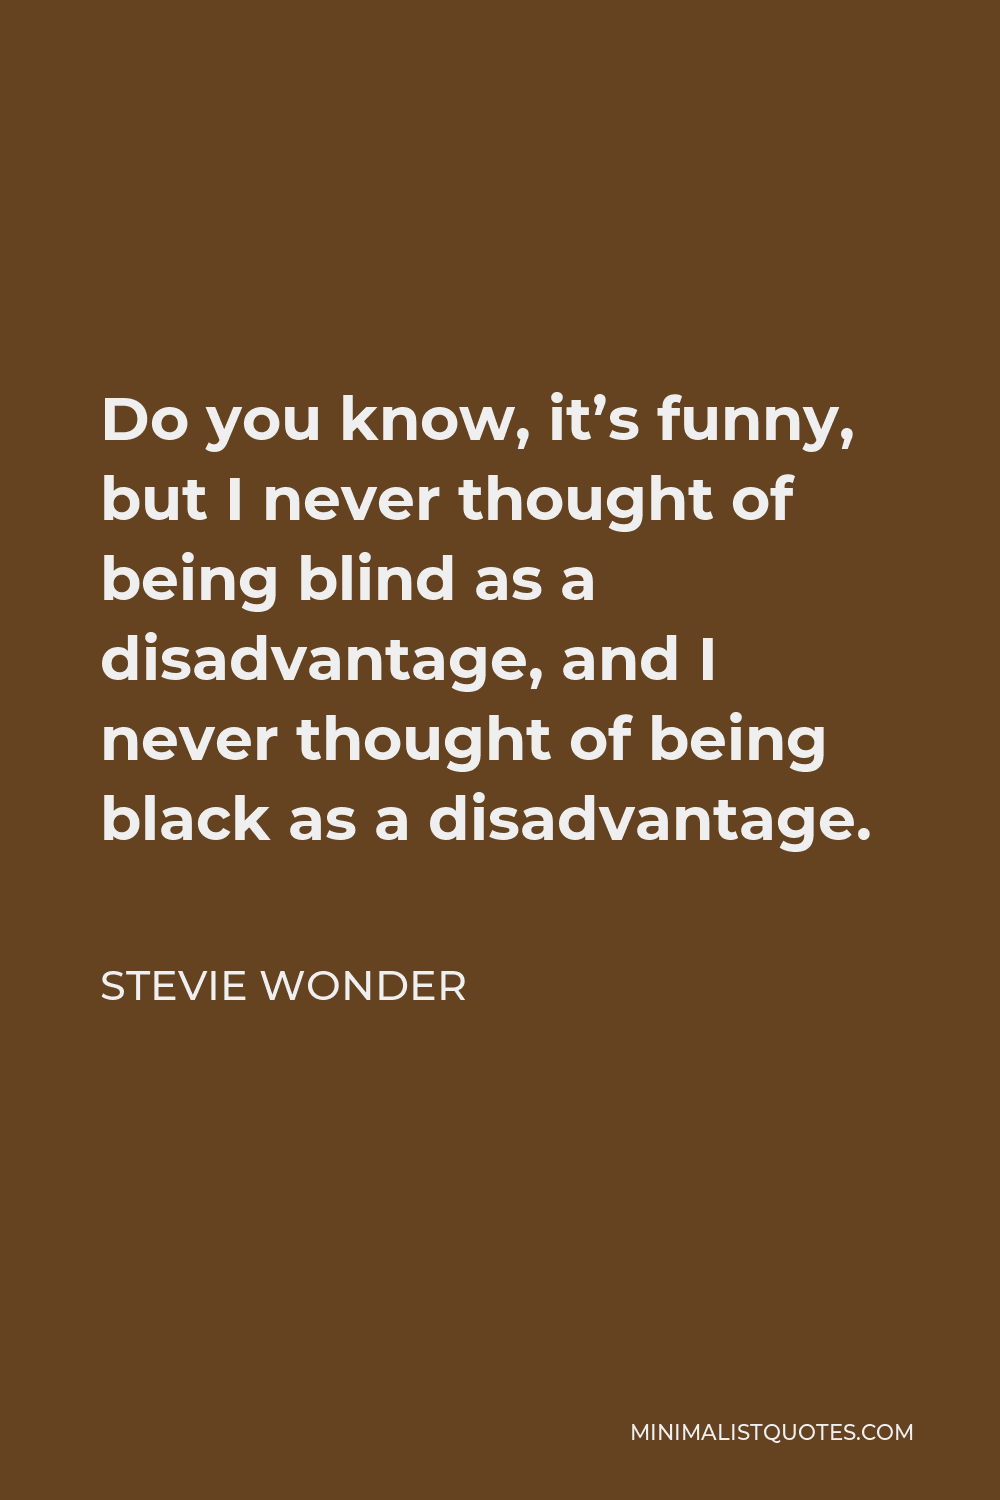 Stevie Wonder Quote - Do you know, it's funny, but I never thought of being blind as a disadvantage, and I never thought of being black as a disadvantage.